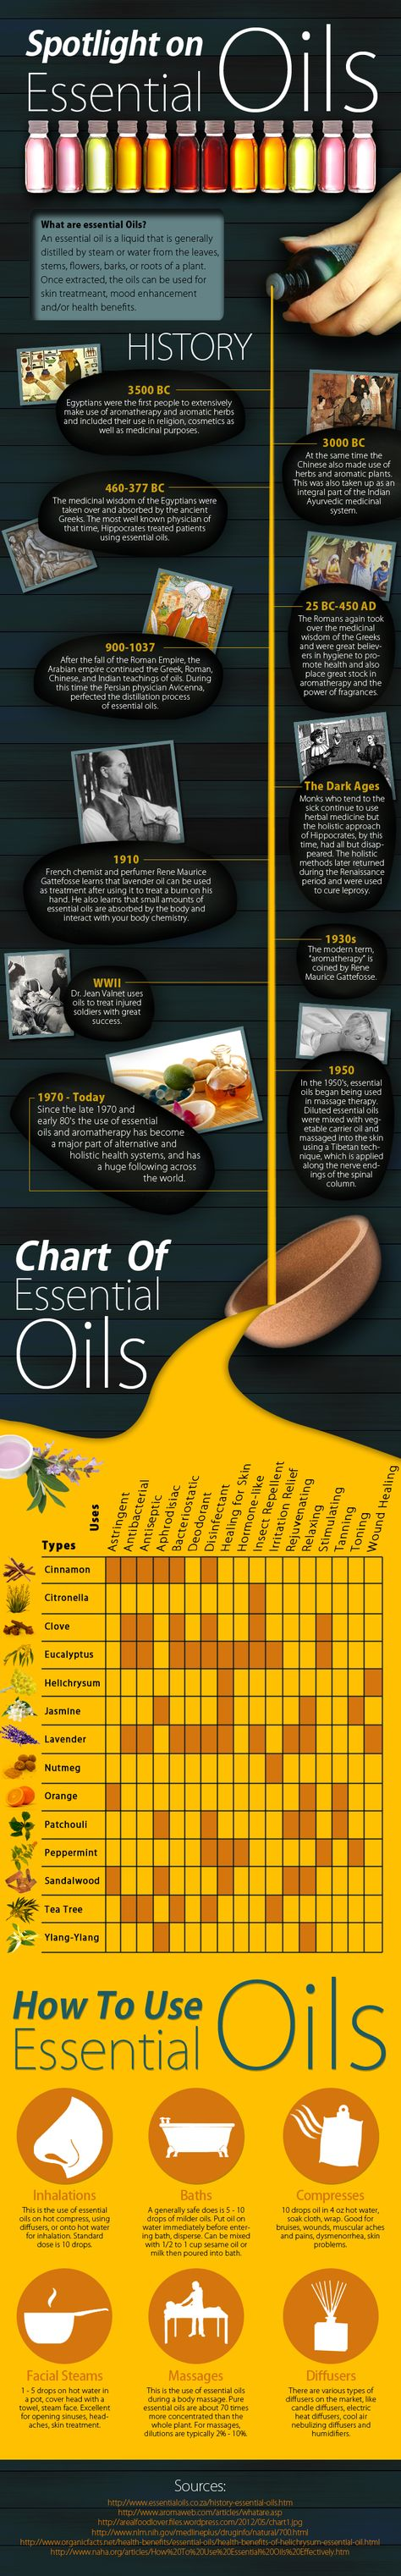 Essential_Oils.png (700×4496)